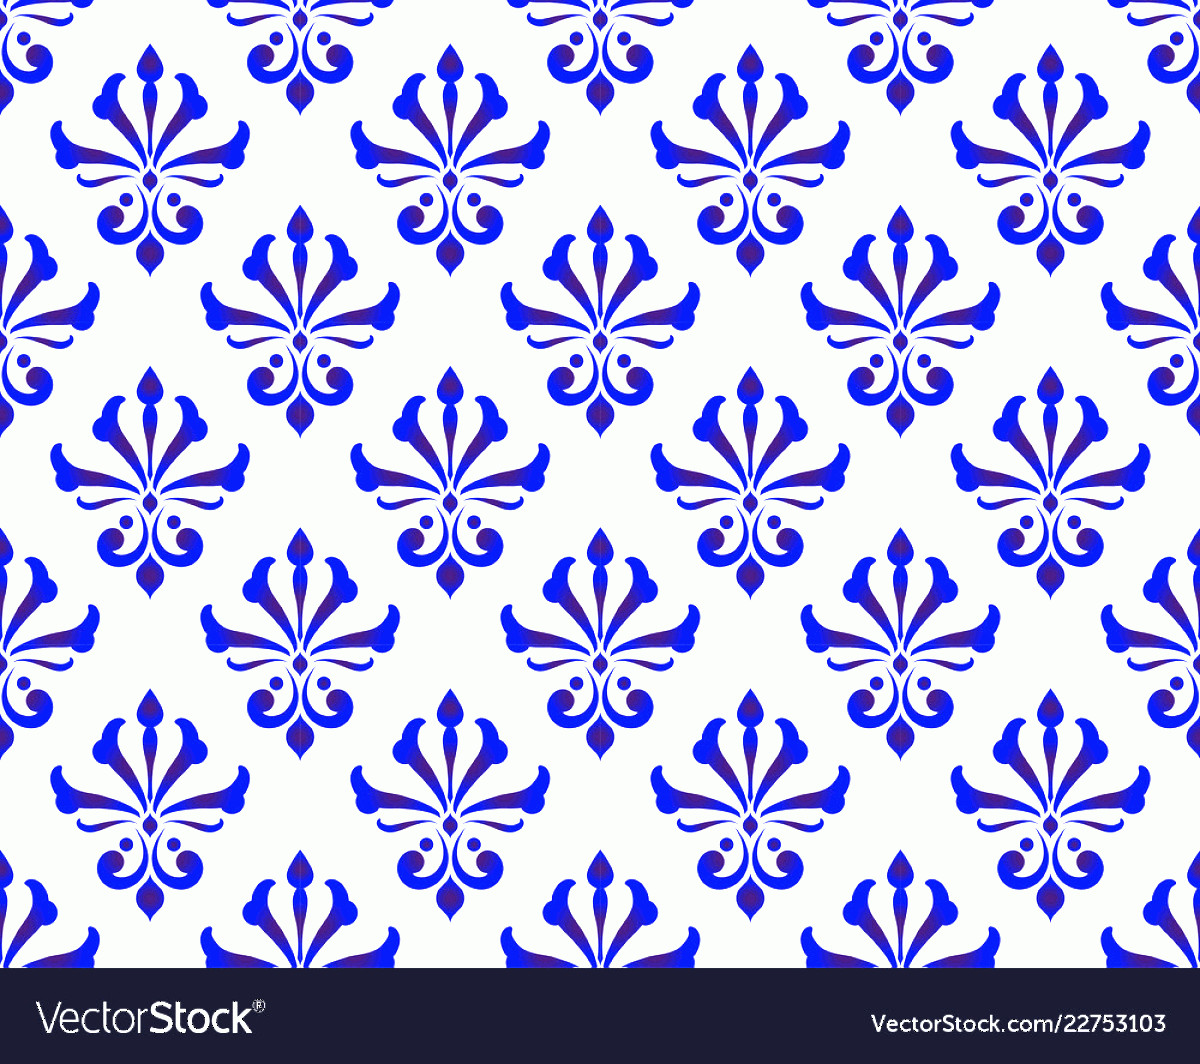 Blue And White Damask Vectors: Blue And White Damask Pattern Vector